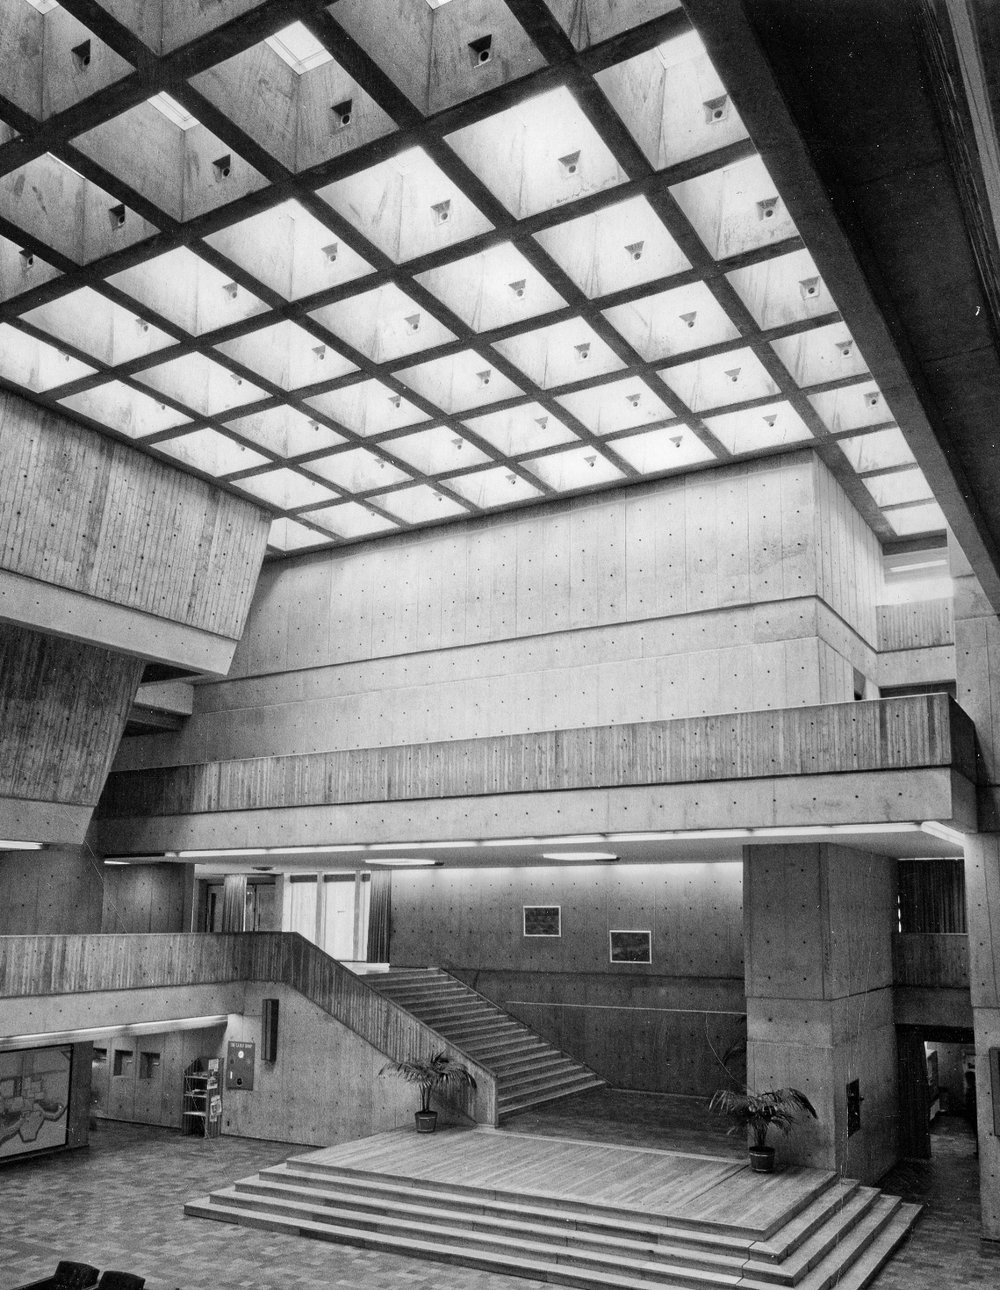 Image: Administration Building, Meeting Place with skylights & second, third, fourth floor walkways. University of Toronto Scarborough Campus. Image from the University of Toronto Scarborough UTSC Library